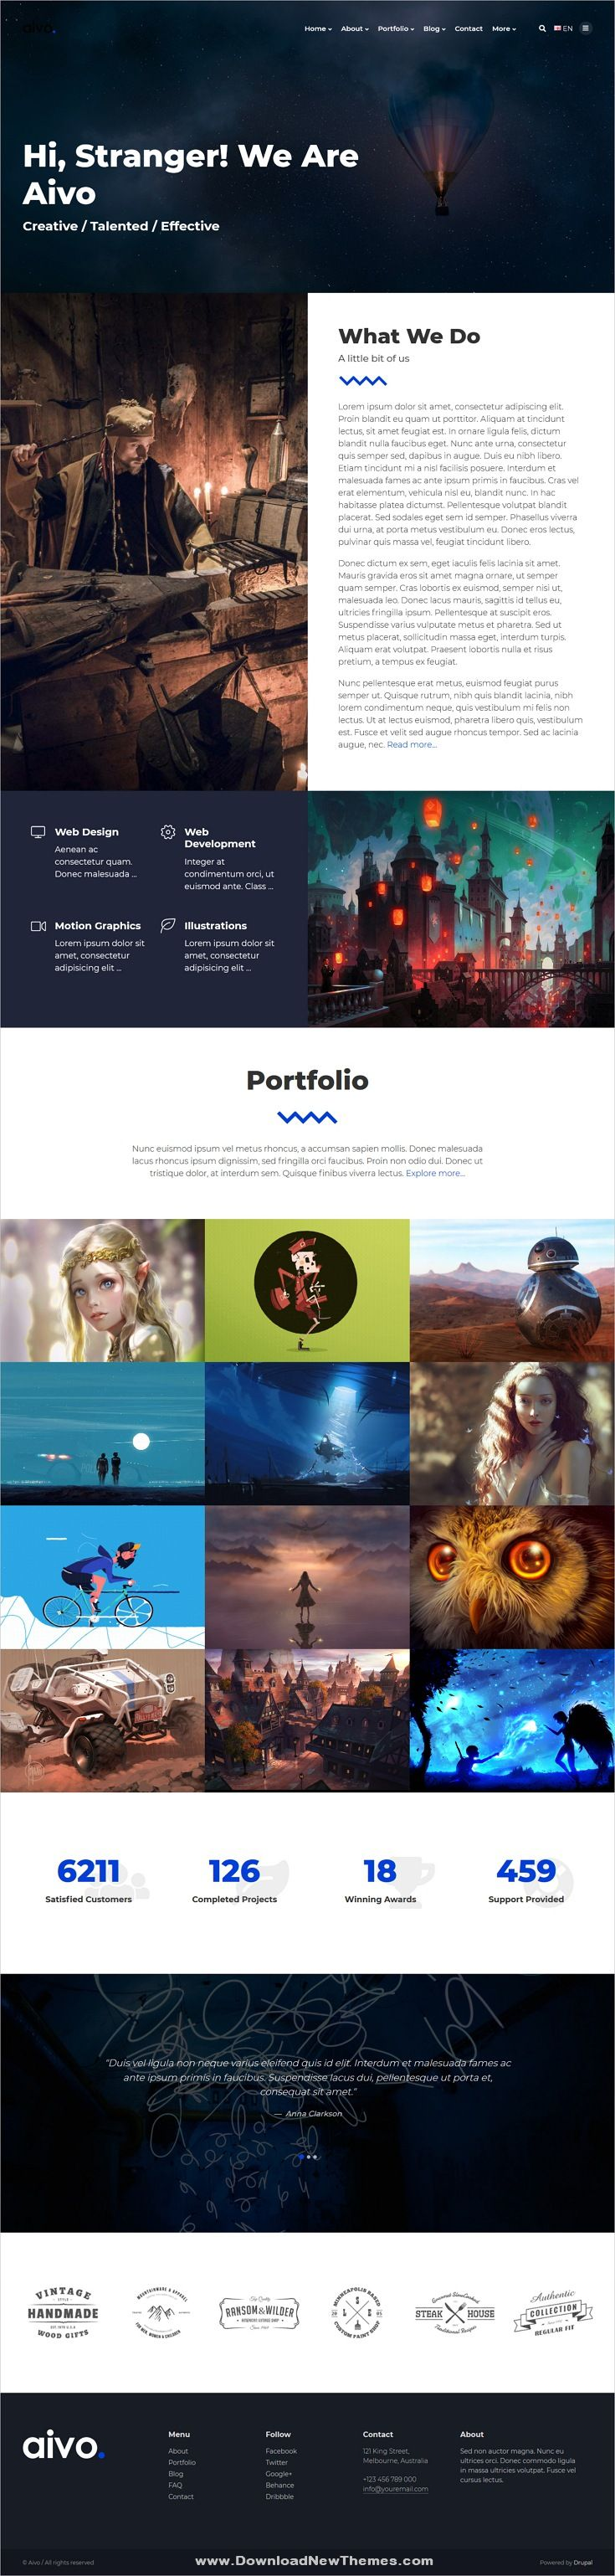 Aivo Is A Clean And Modern Design 6in1 Responsive Drupal Templates For Creative Freelancers Artists Design Agencies Beautiful Portfolio Showcase Website